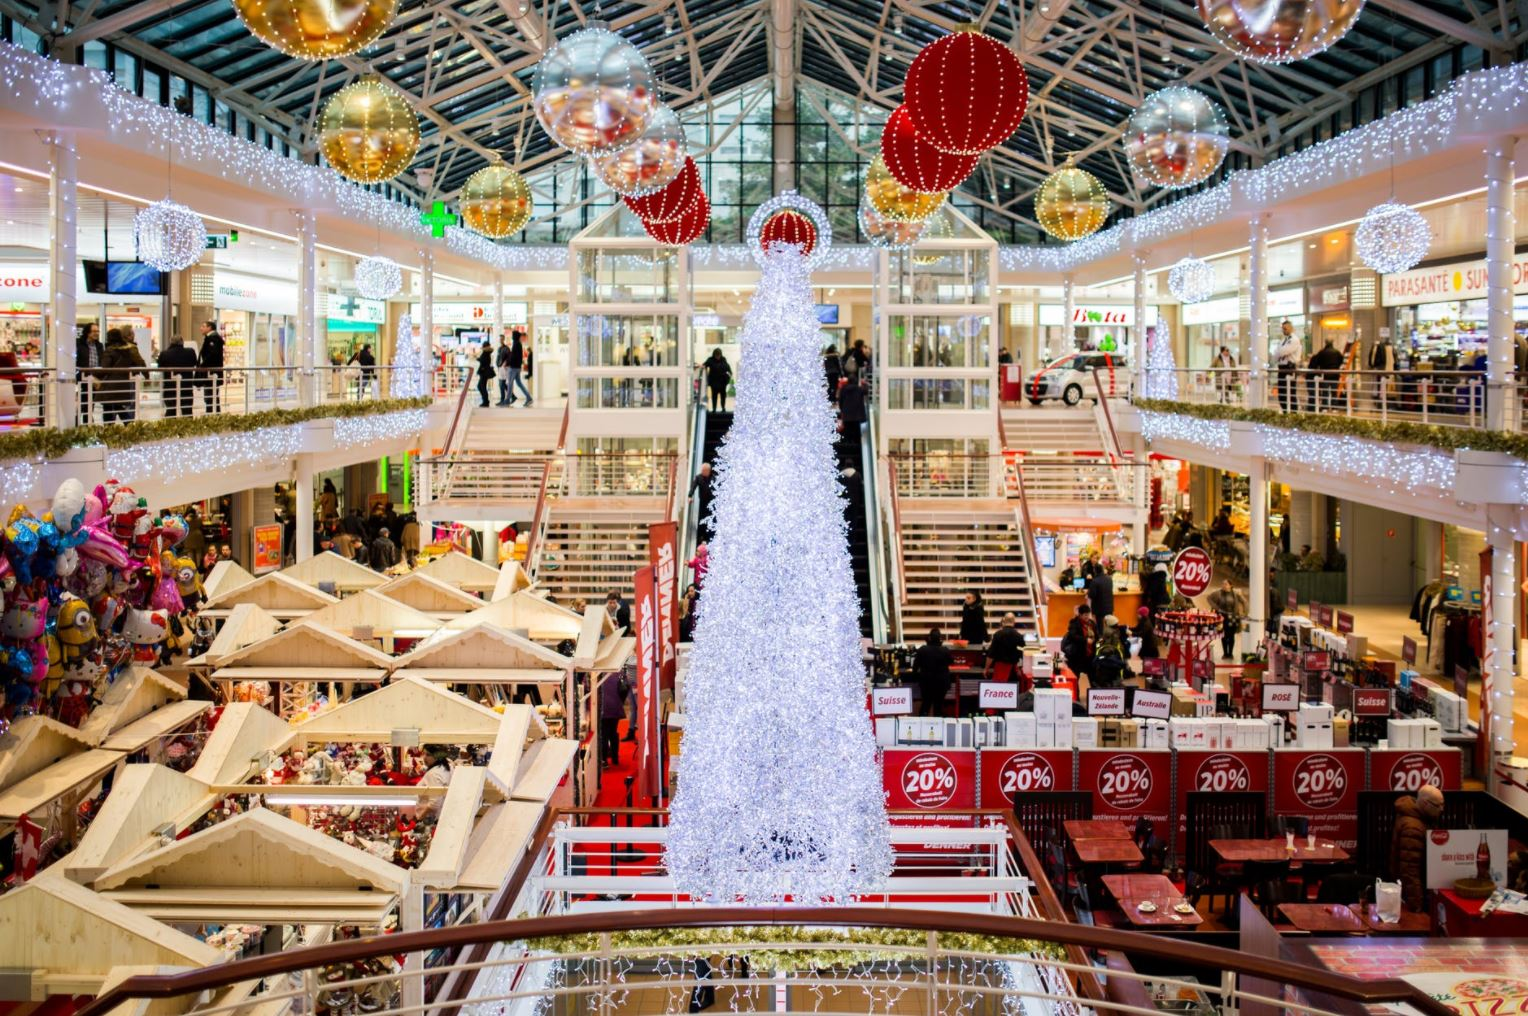 Shops May Operate 24/7 Over The Christmas Period